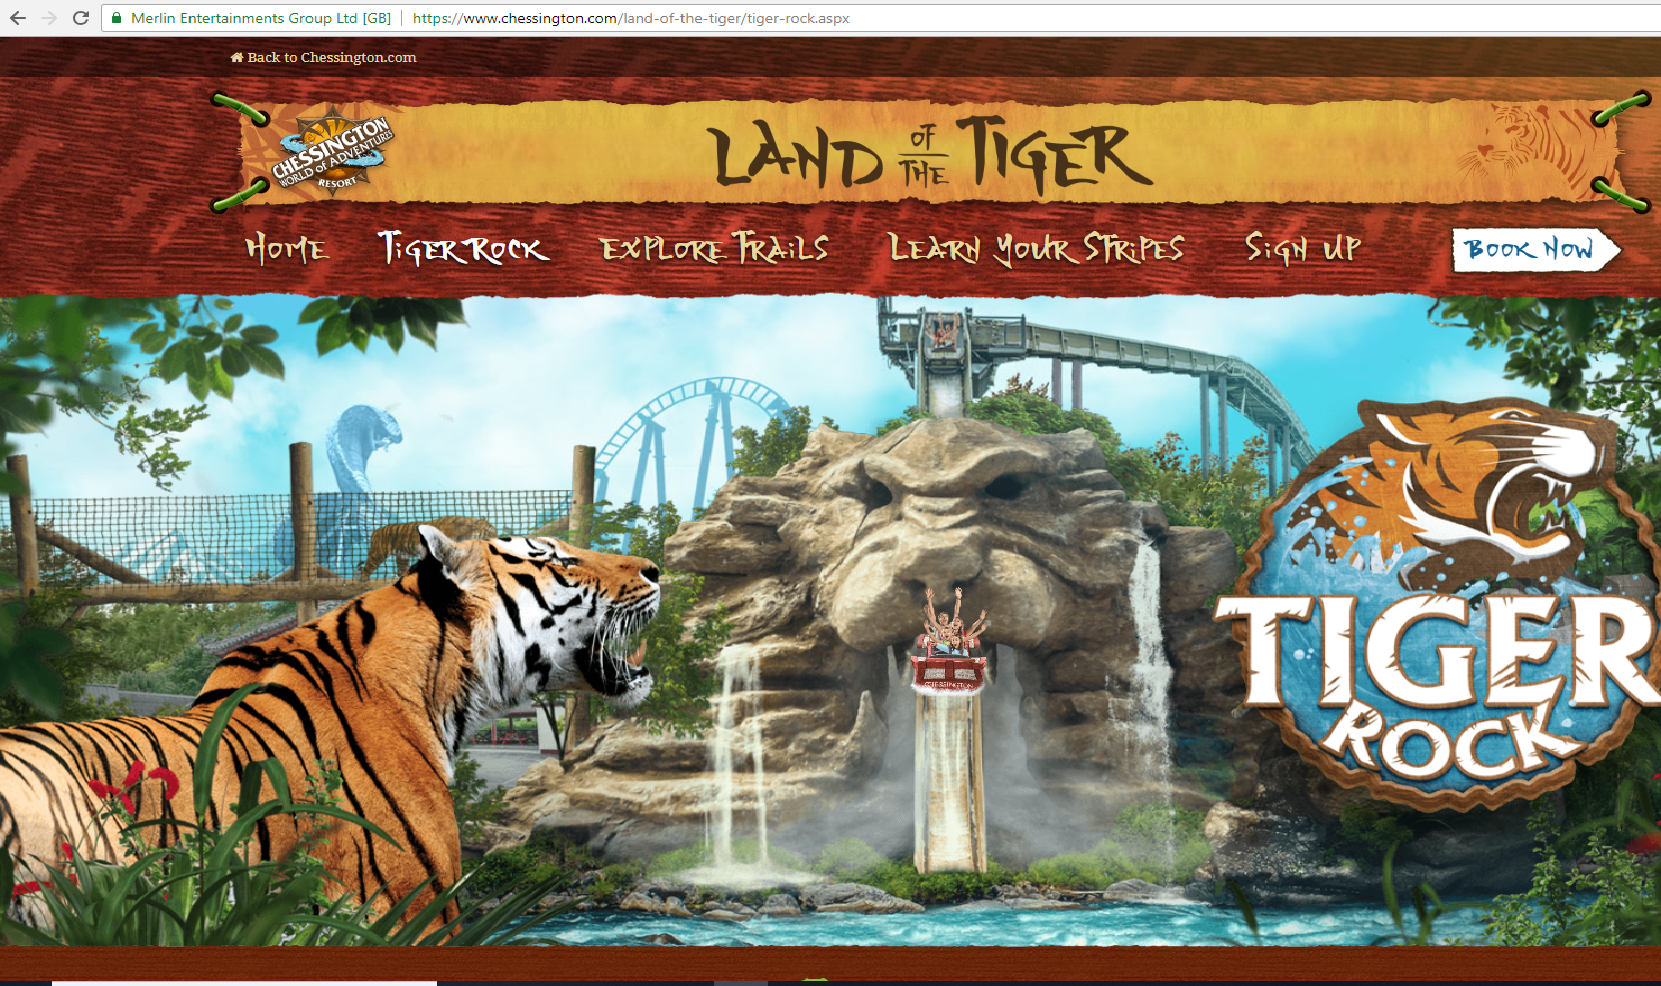 A screenshot of the Tiger Land ride at Chessington World of Adventures